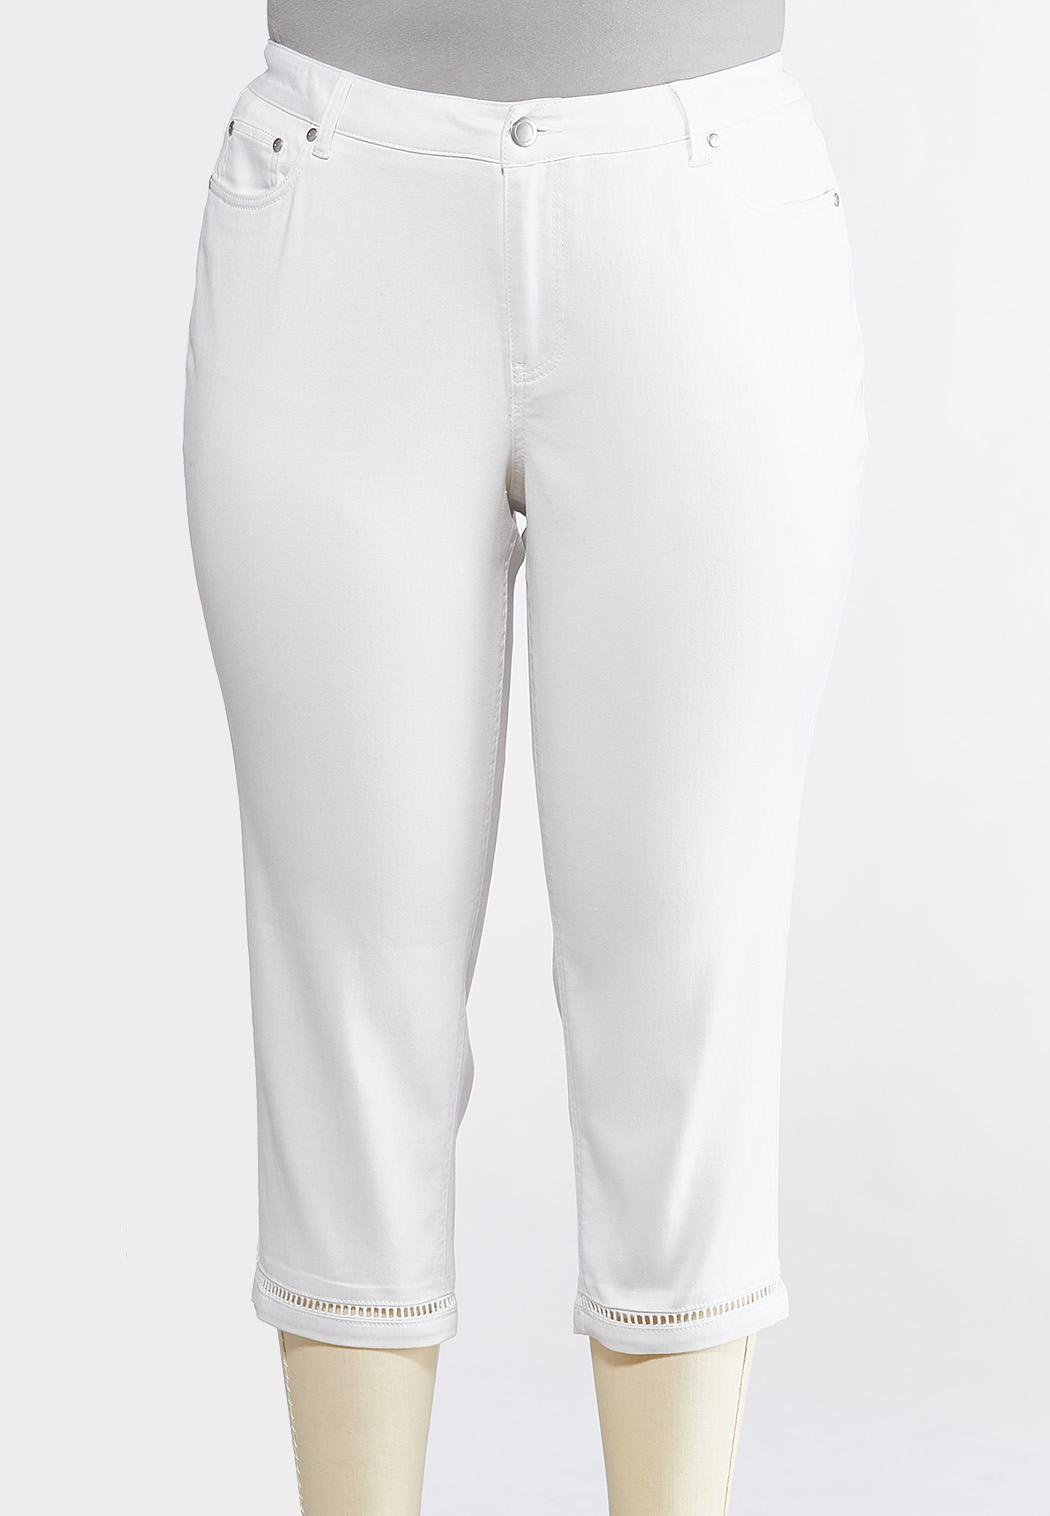 Plus Size White Inset Cropped Jeans